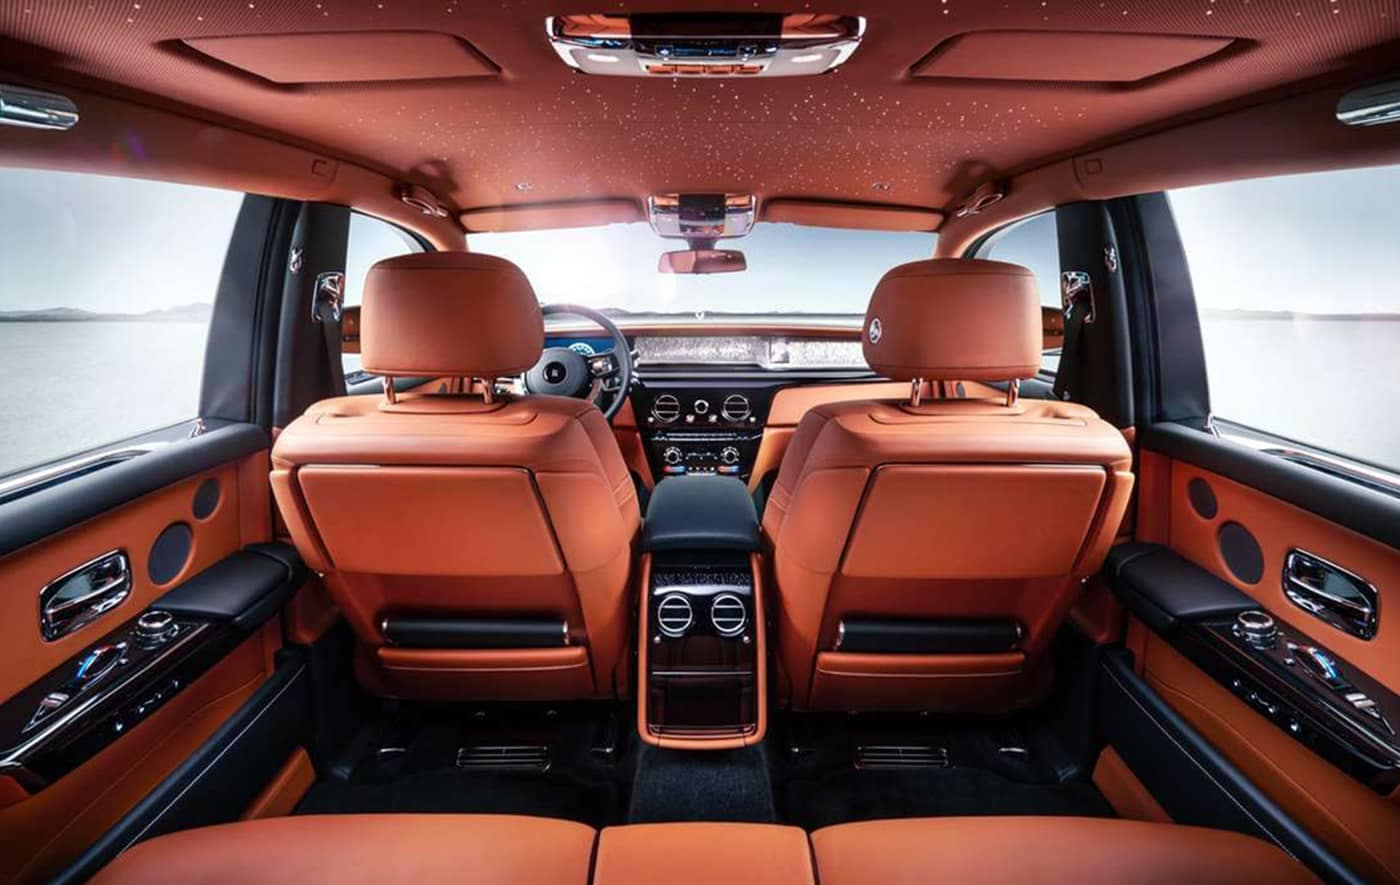 2020 Rolls Royce Phantom Interior